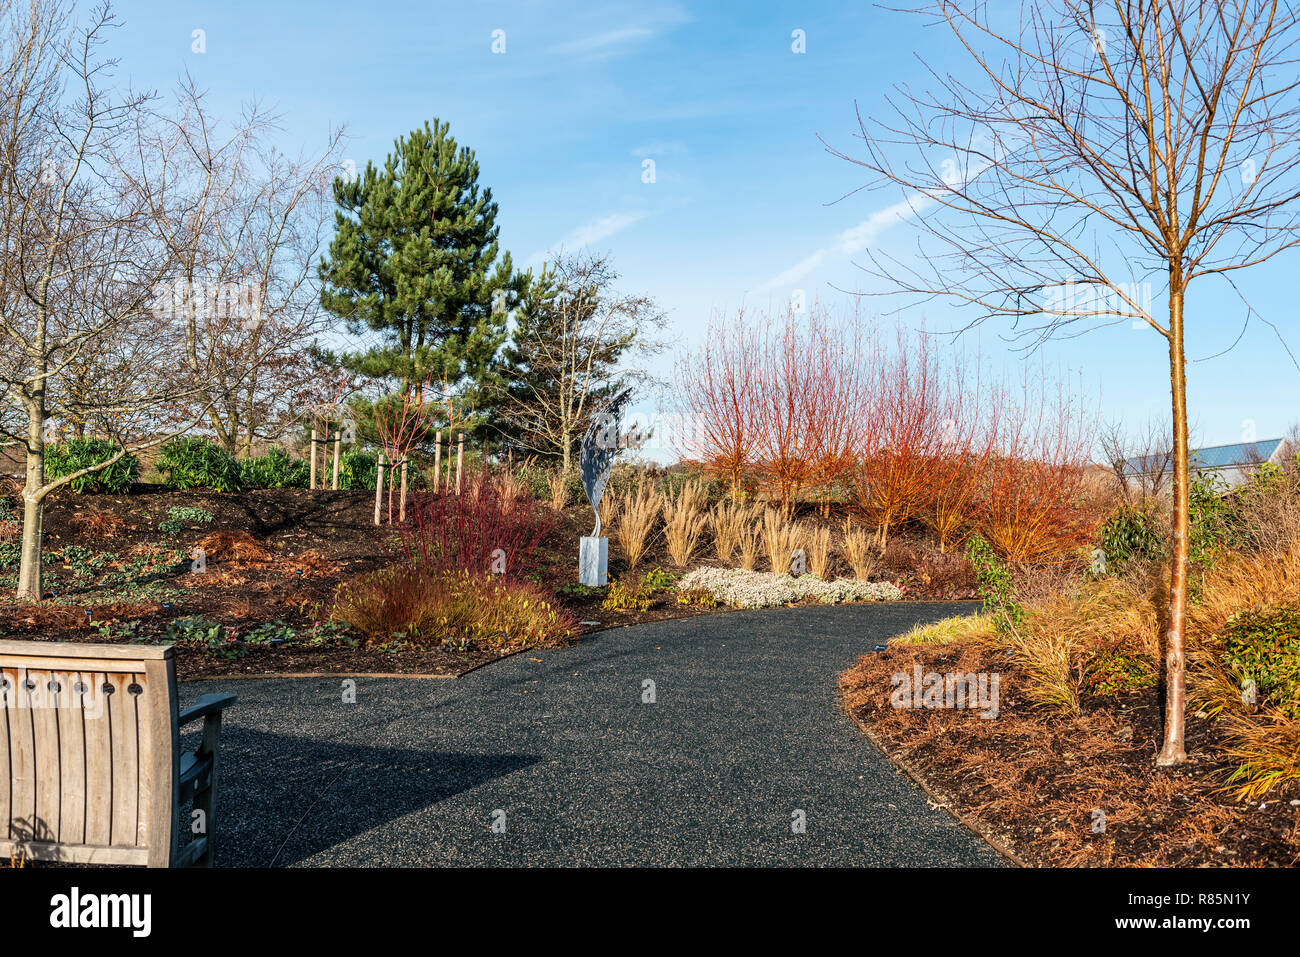 The winter garden at RHS  Hyde Hall. Pathway through the Royal Horticultural Society's winter garden. Stock Photo